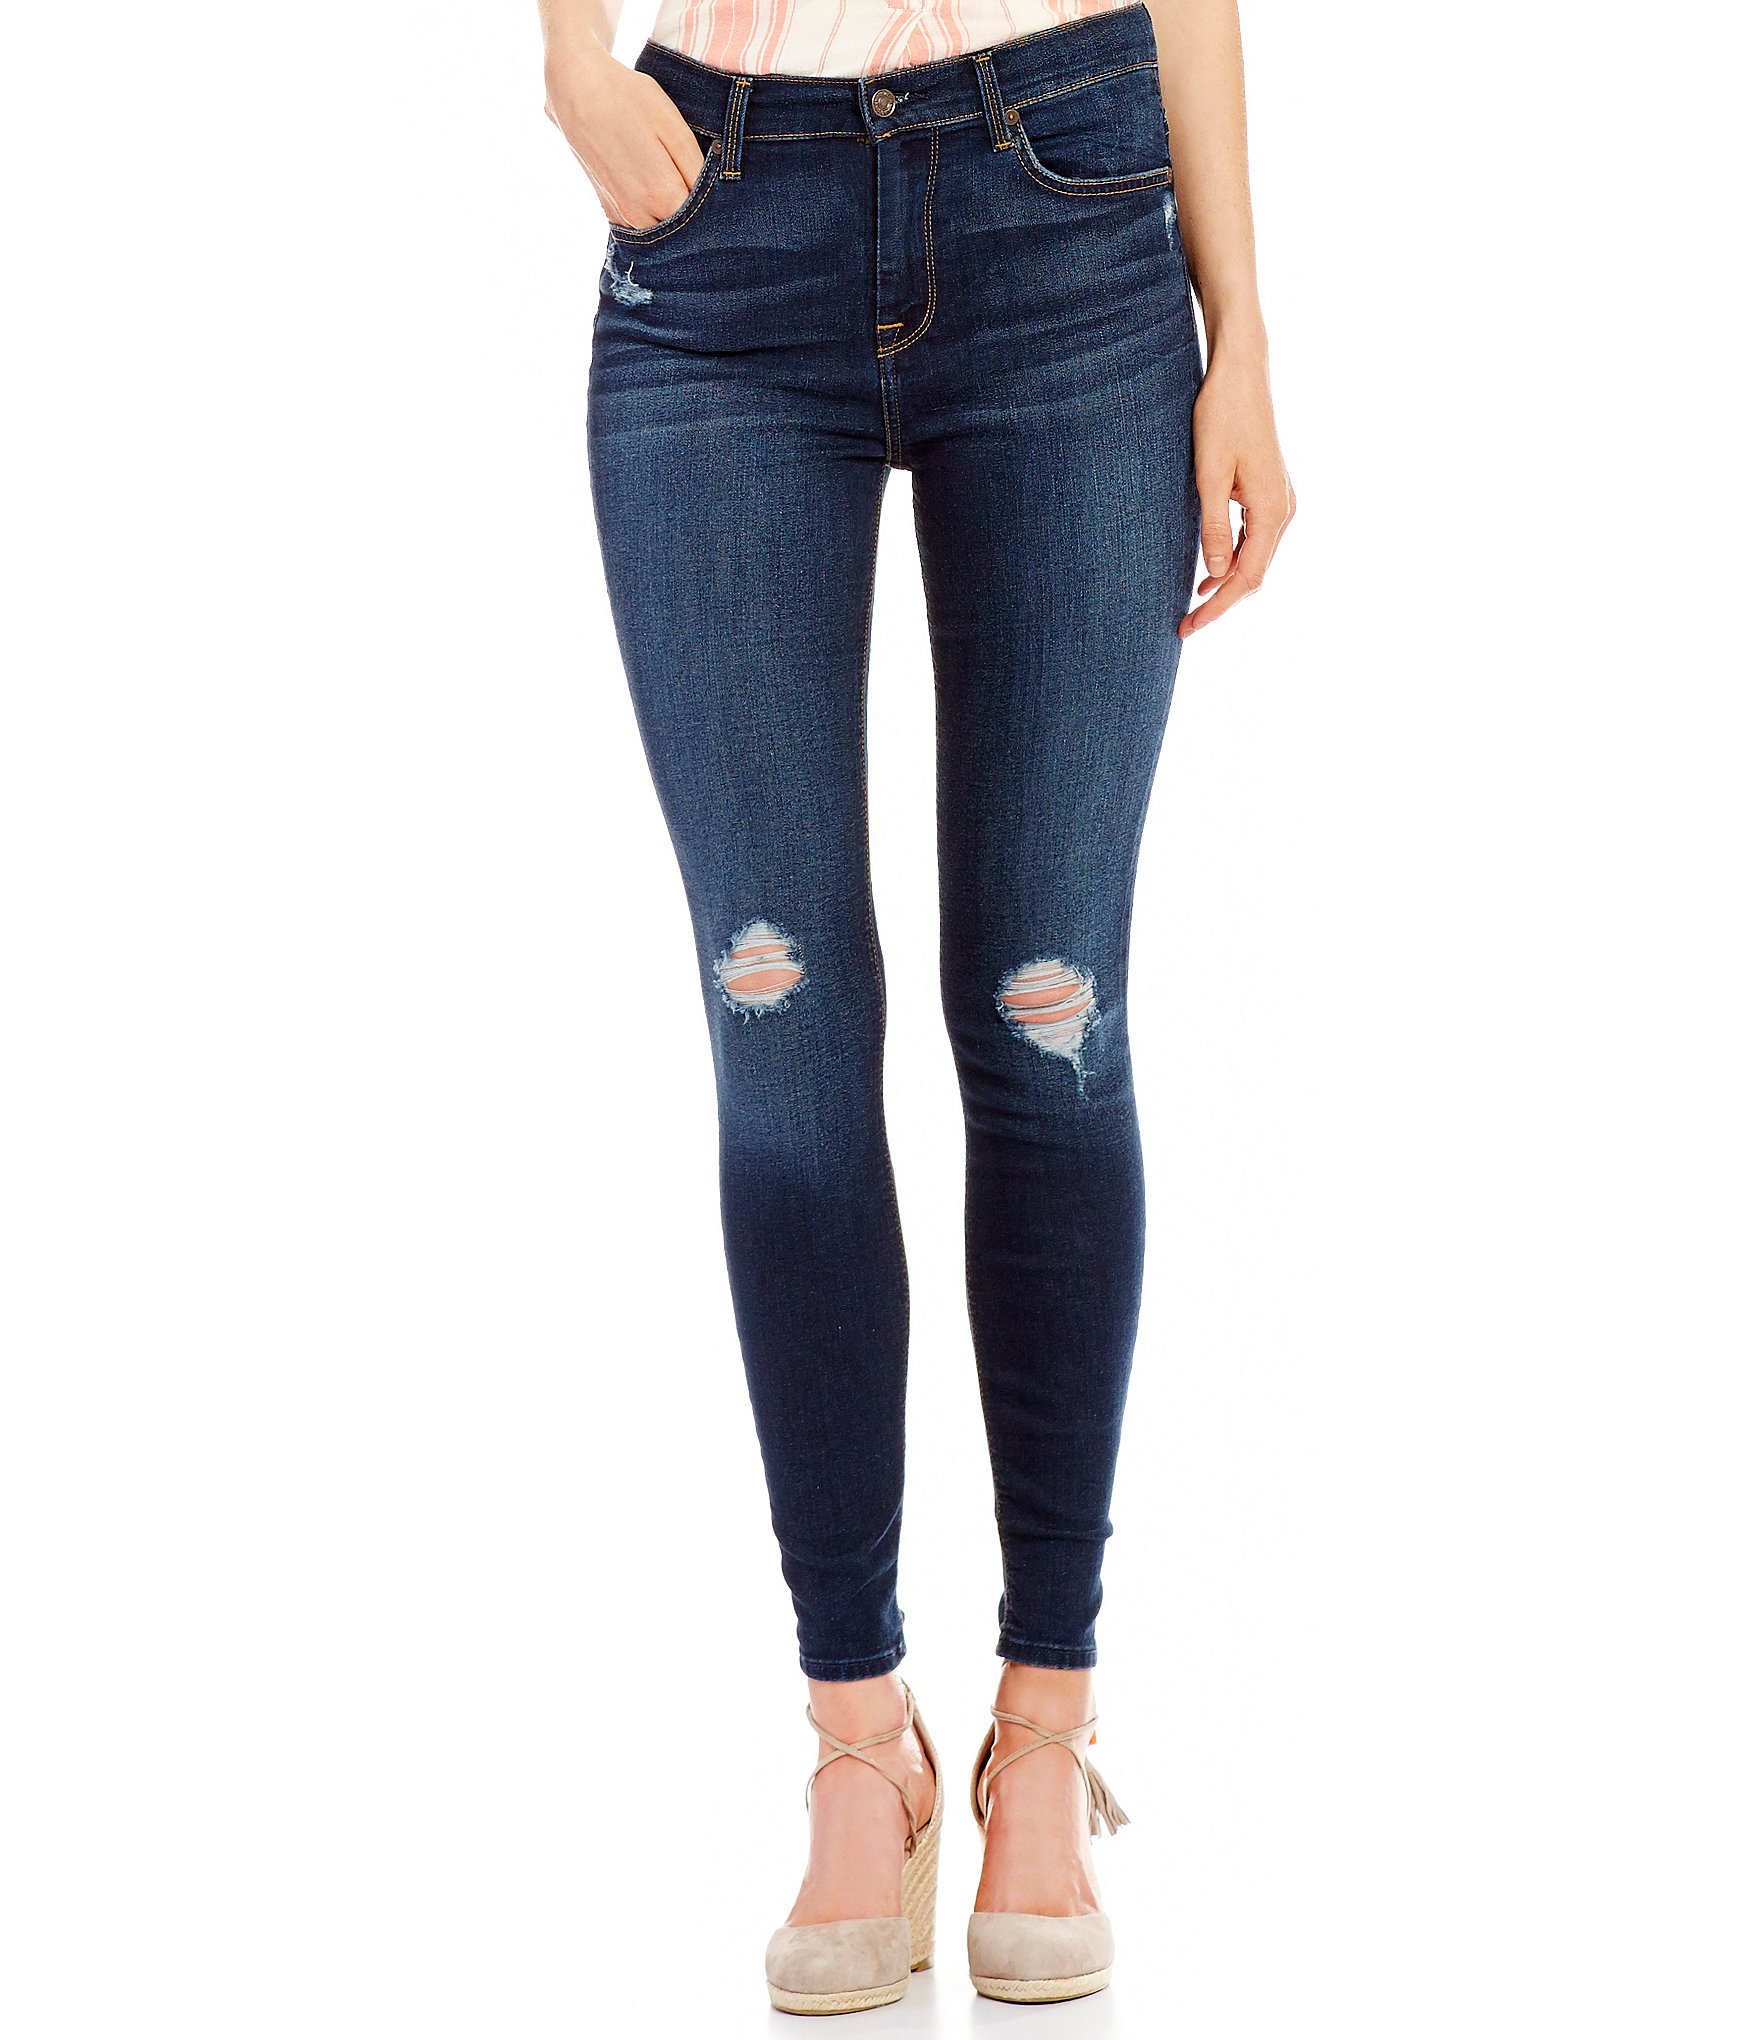 7 for all mankind High Waist Destructed Ankle Skinny Jeans | Dillards